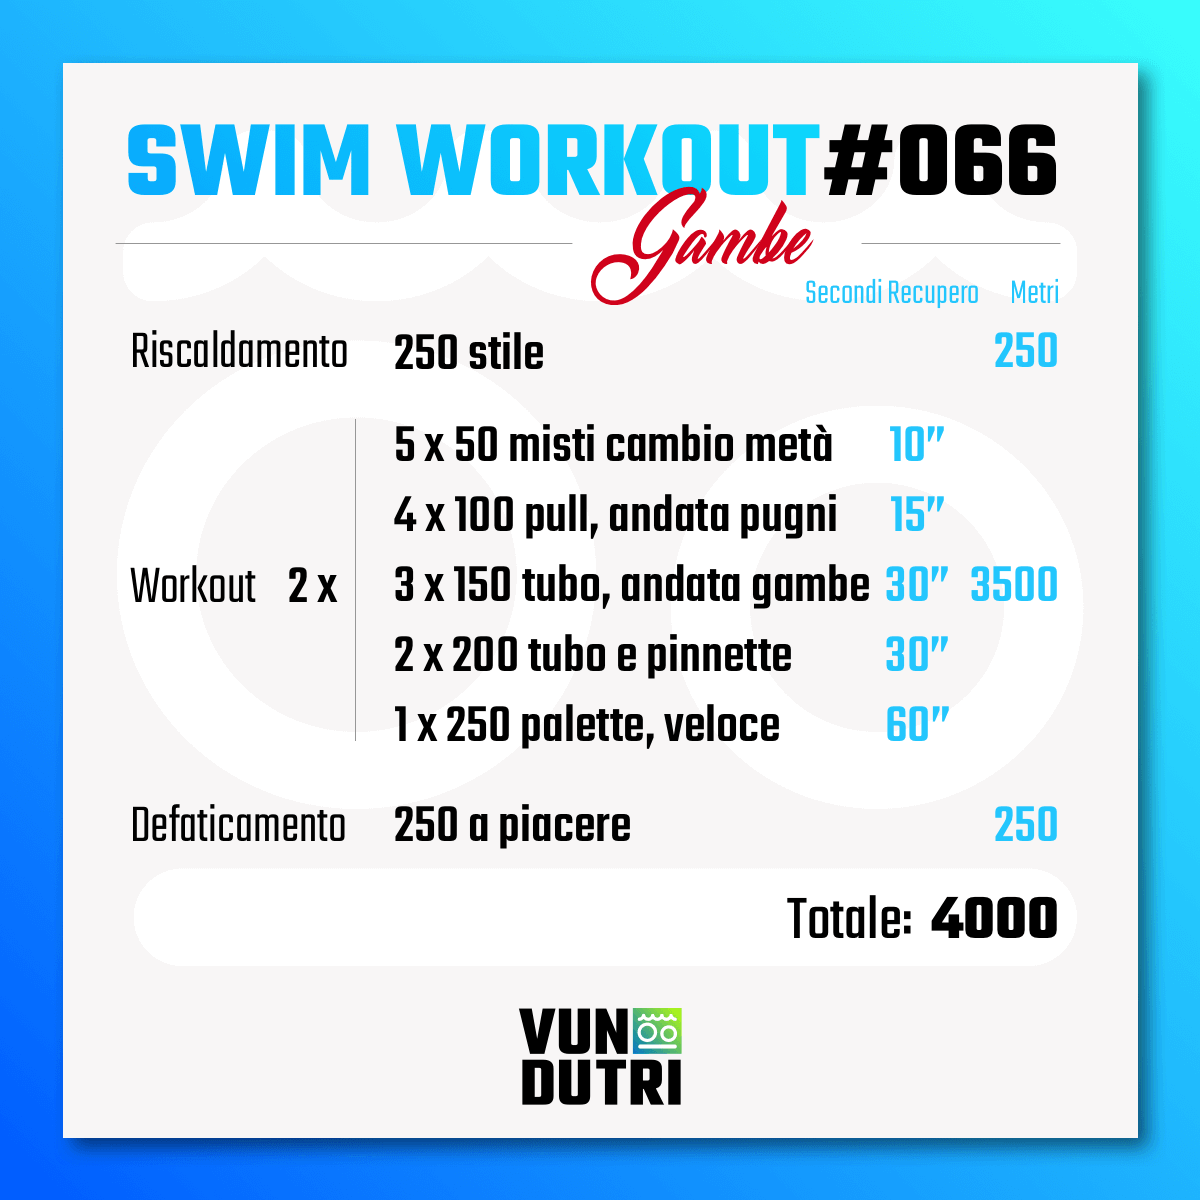 Swim workout 066